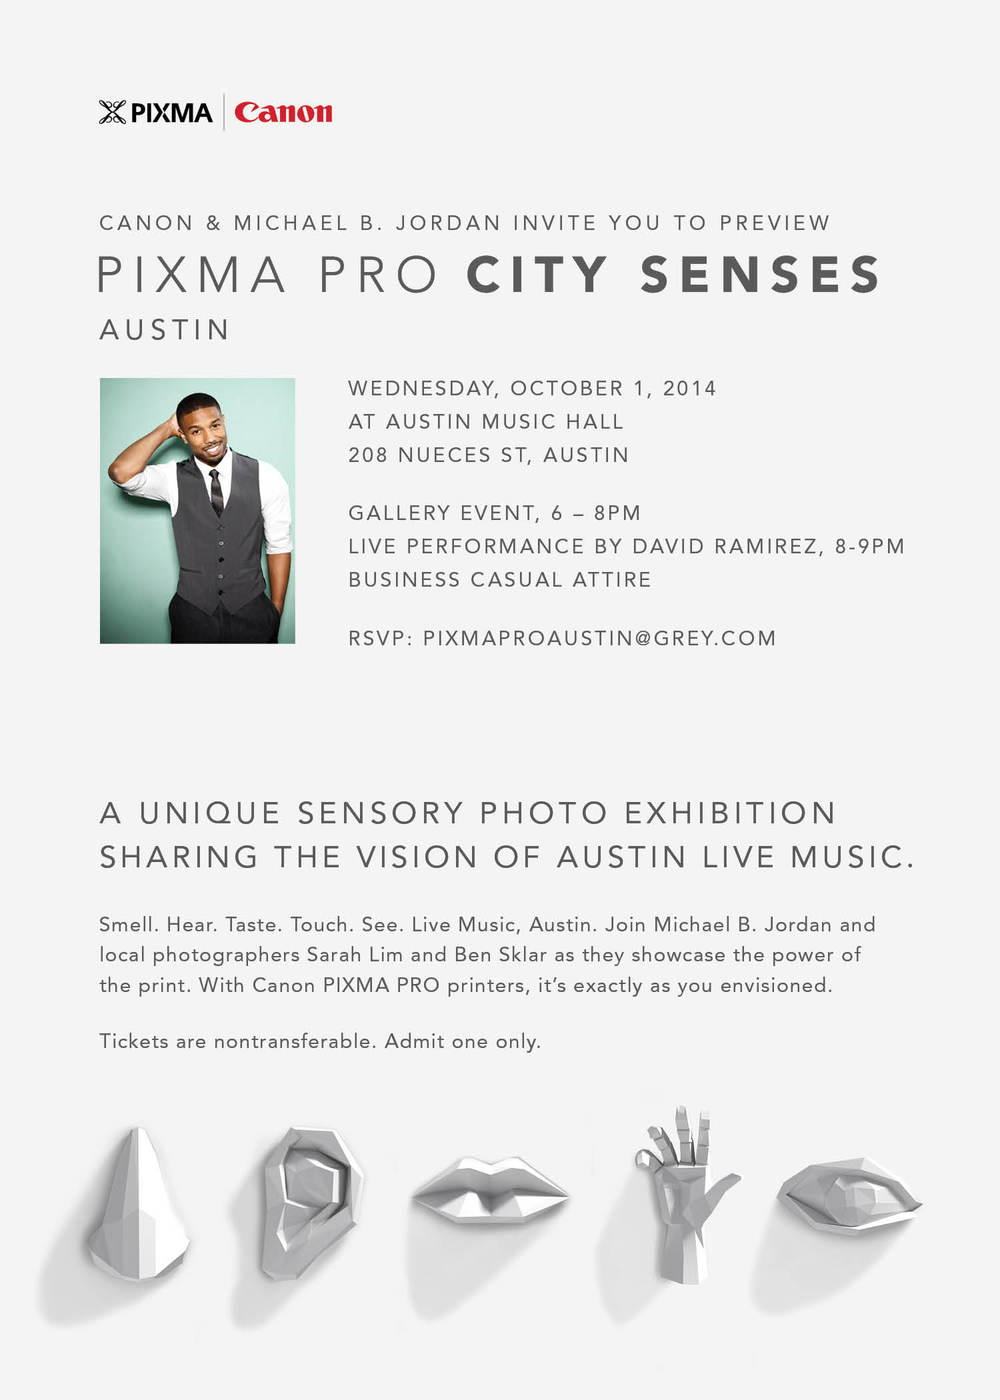 canon-pixma-pro-city-senses-gallery-event-in-austin-tx-on-10114_15746331969_o.jpg